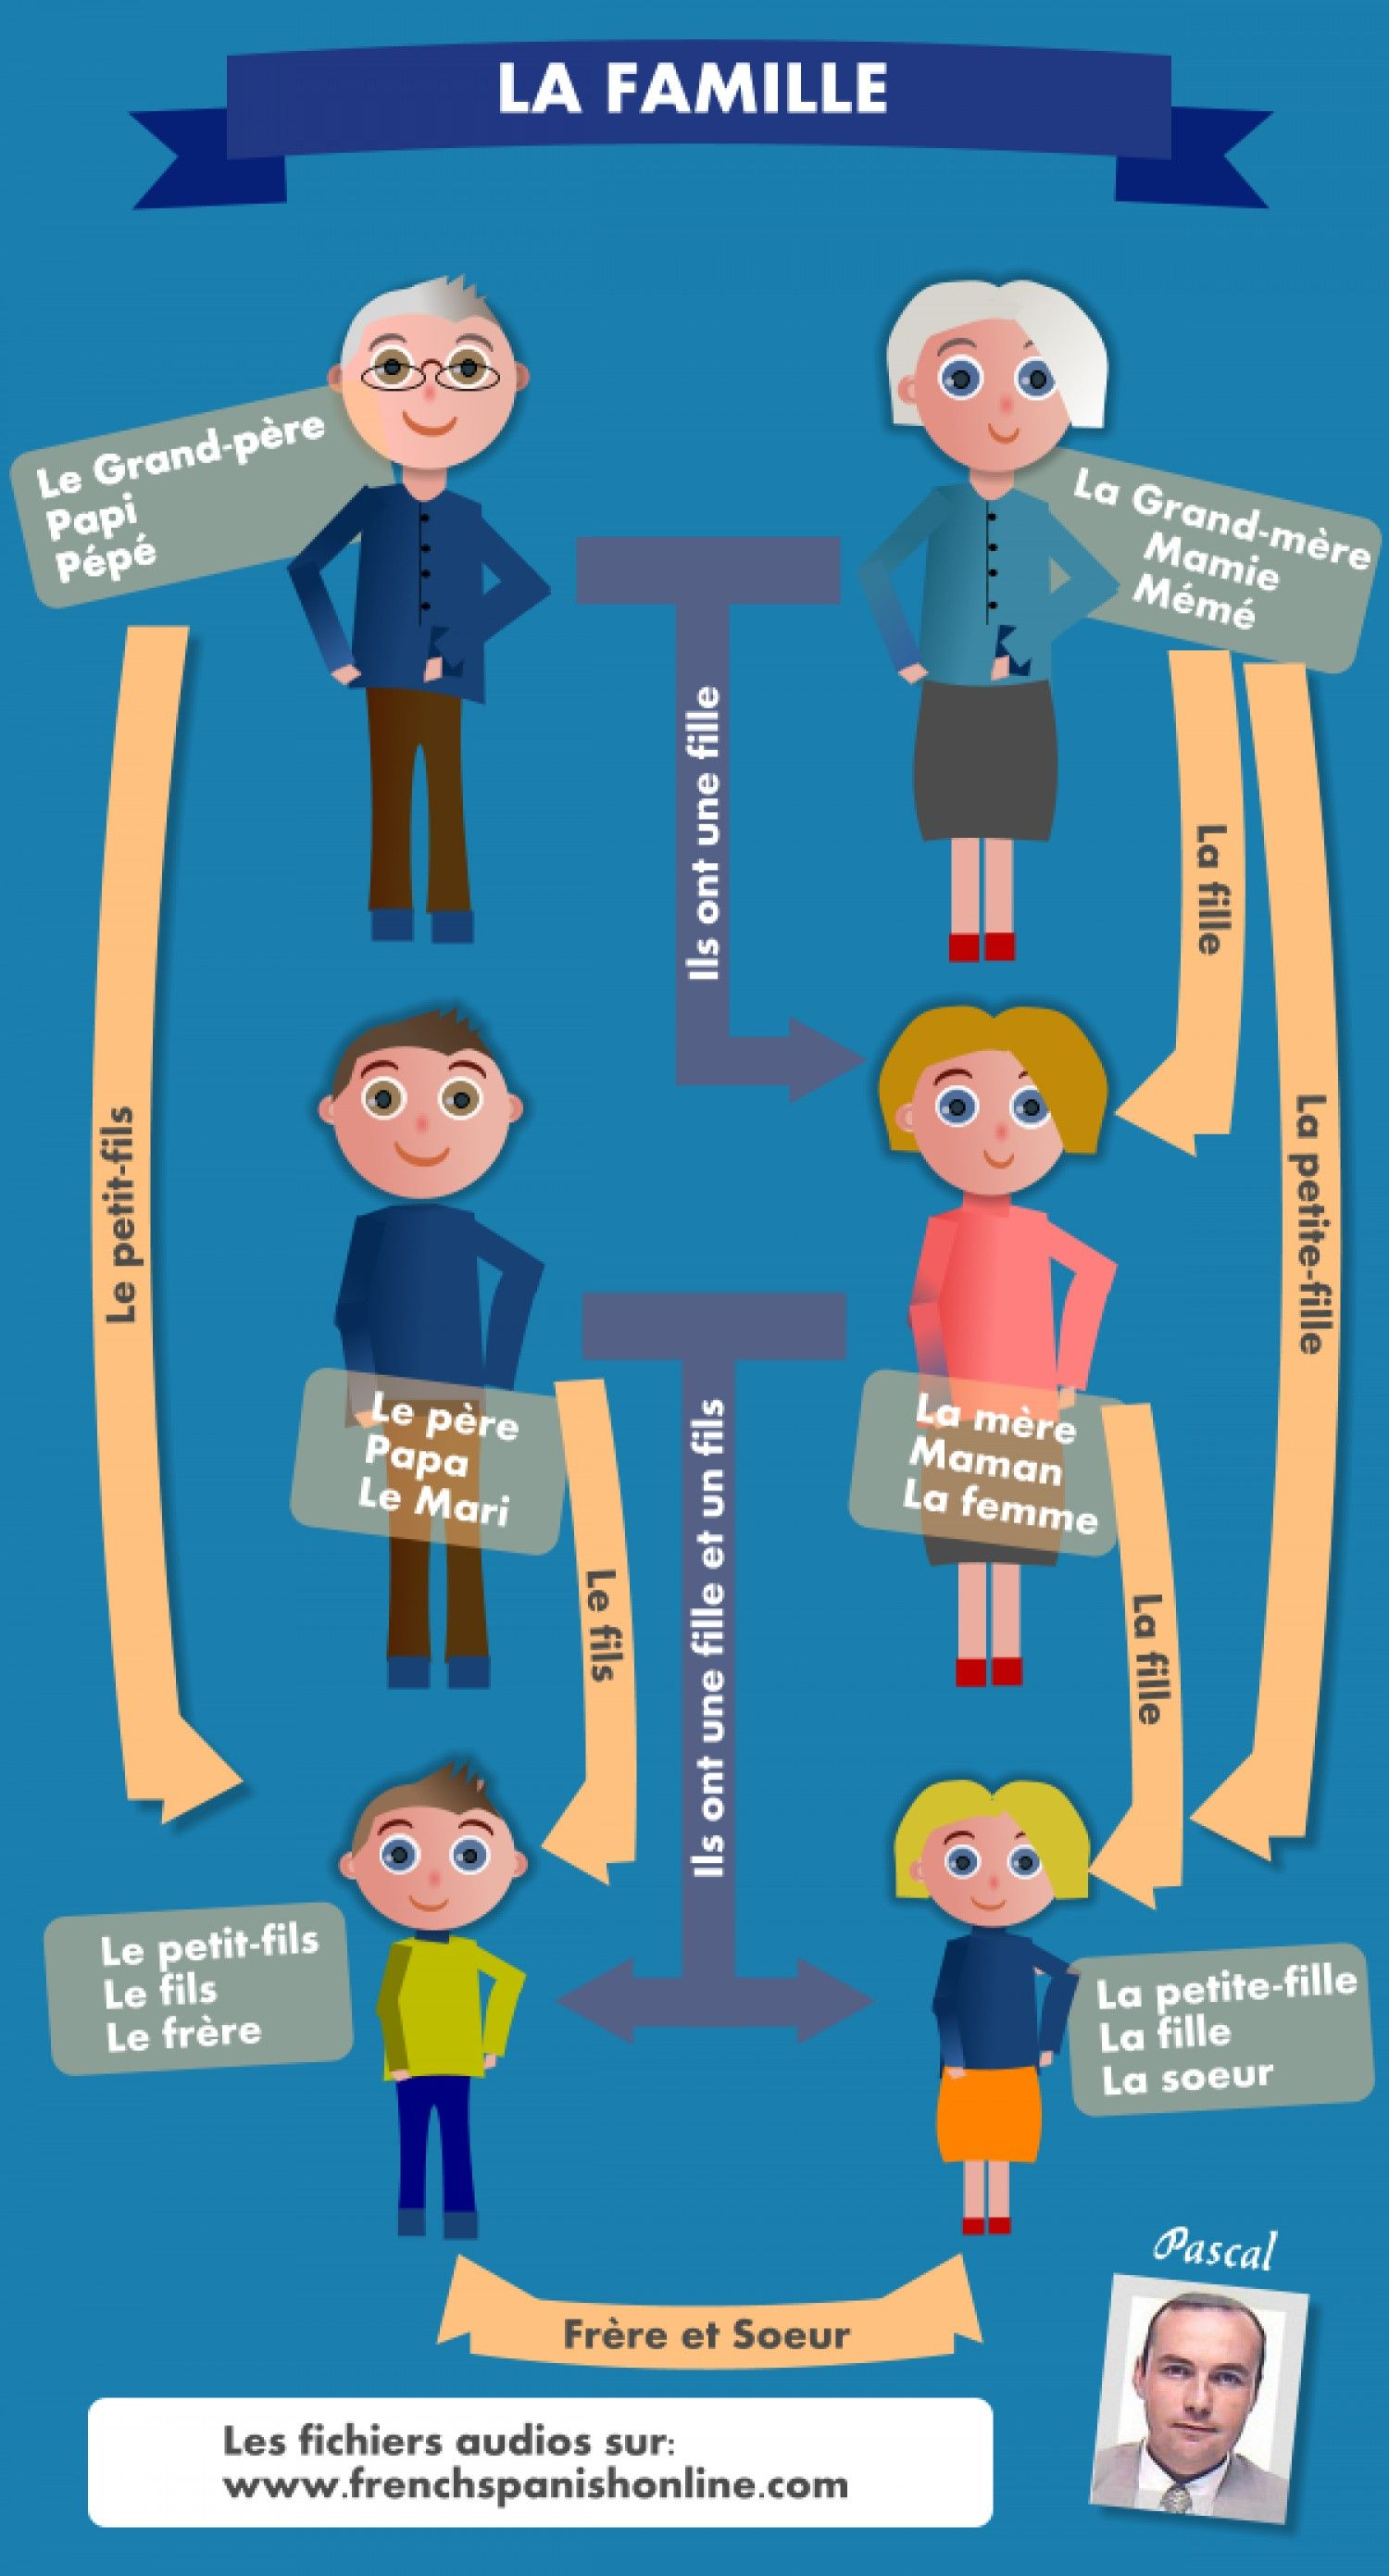 French Family Infographic With Images